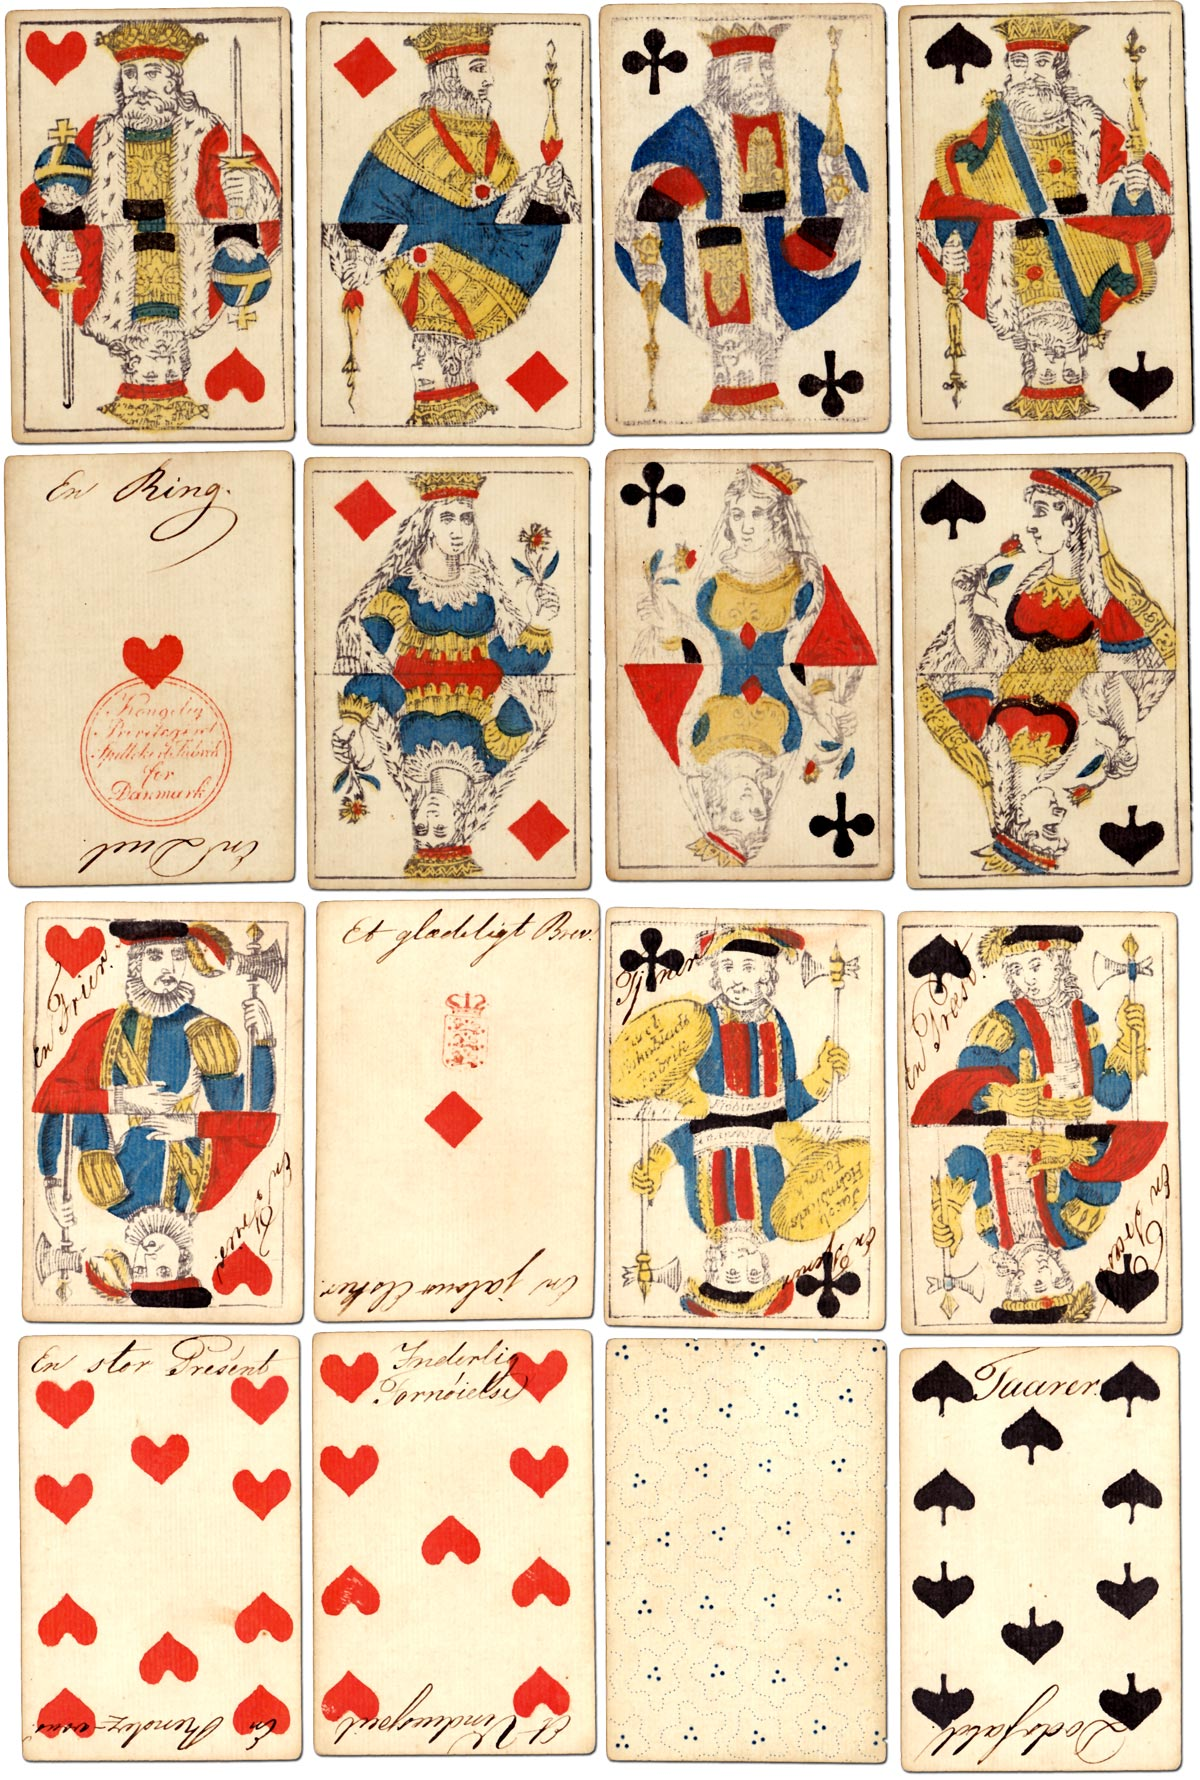 Standard woodblock and stencil pack produced by Jacob Holmblad with double-ended court cards in the tradition of the French 'Paris' pattern, c.1820